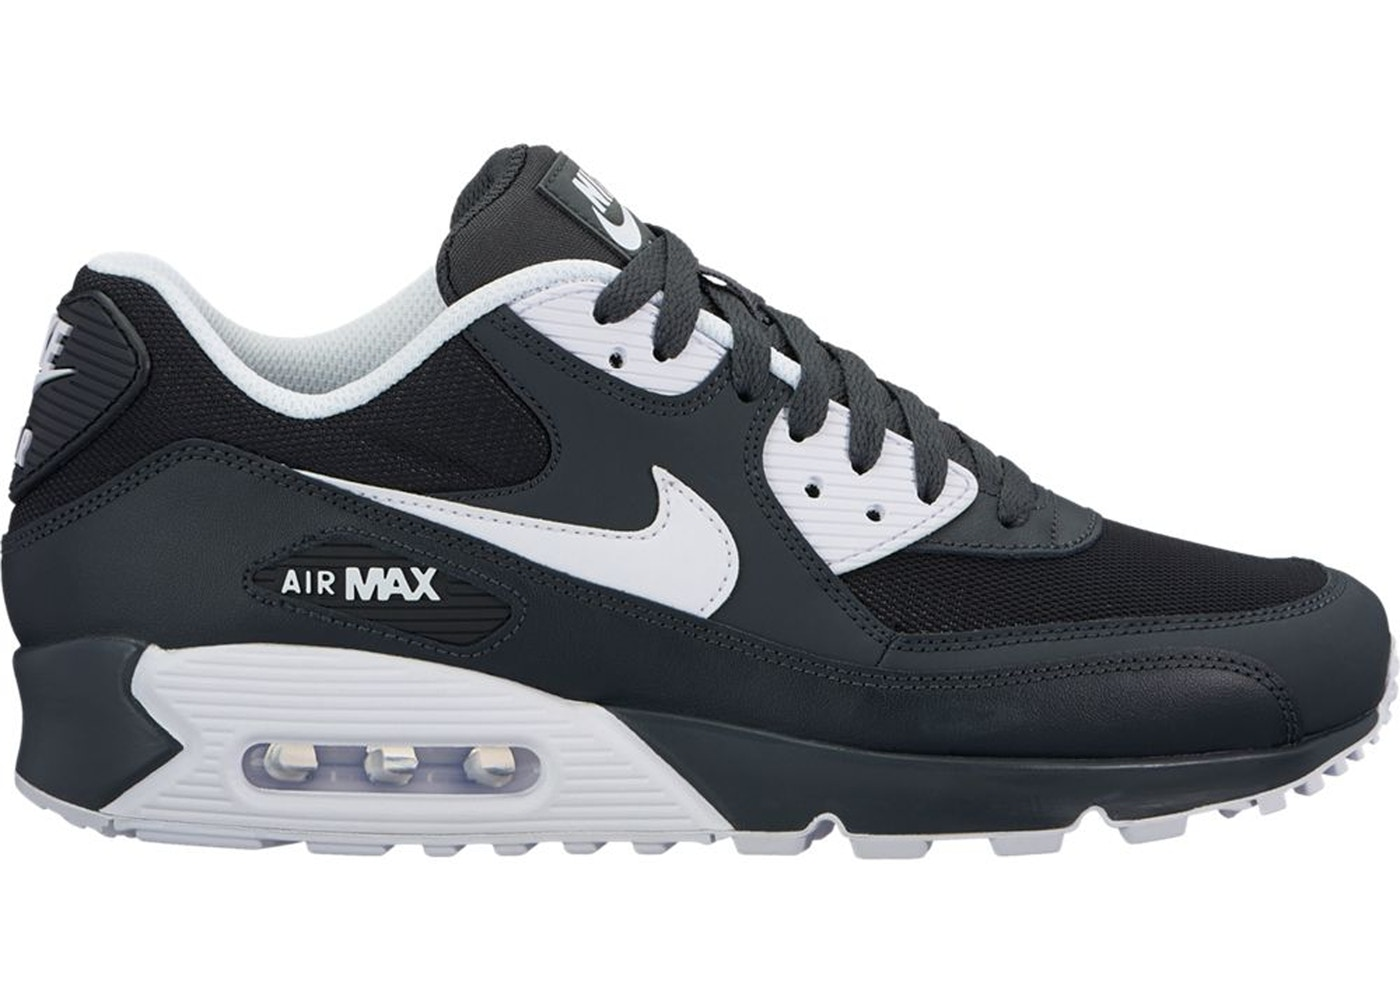 1cfabb8cbde62 Sell. or Ask. Size: 13. View All Bids. Air Max 90 Black White ...